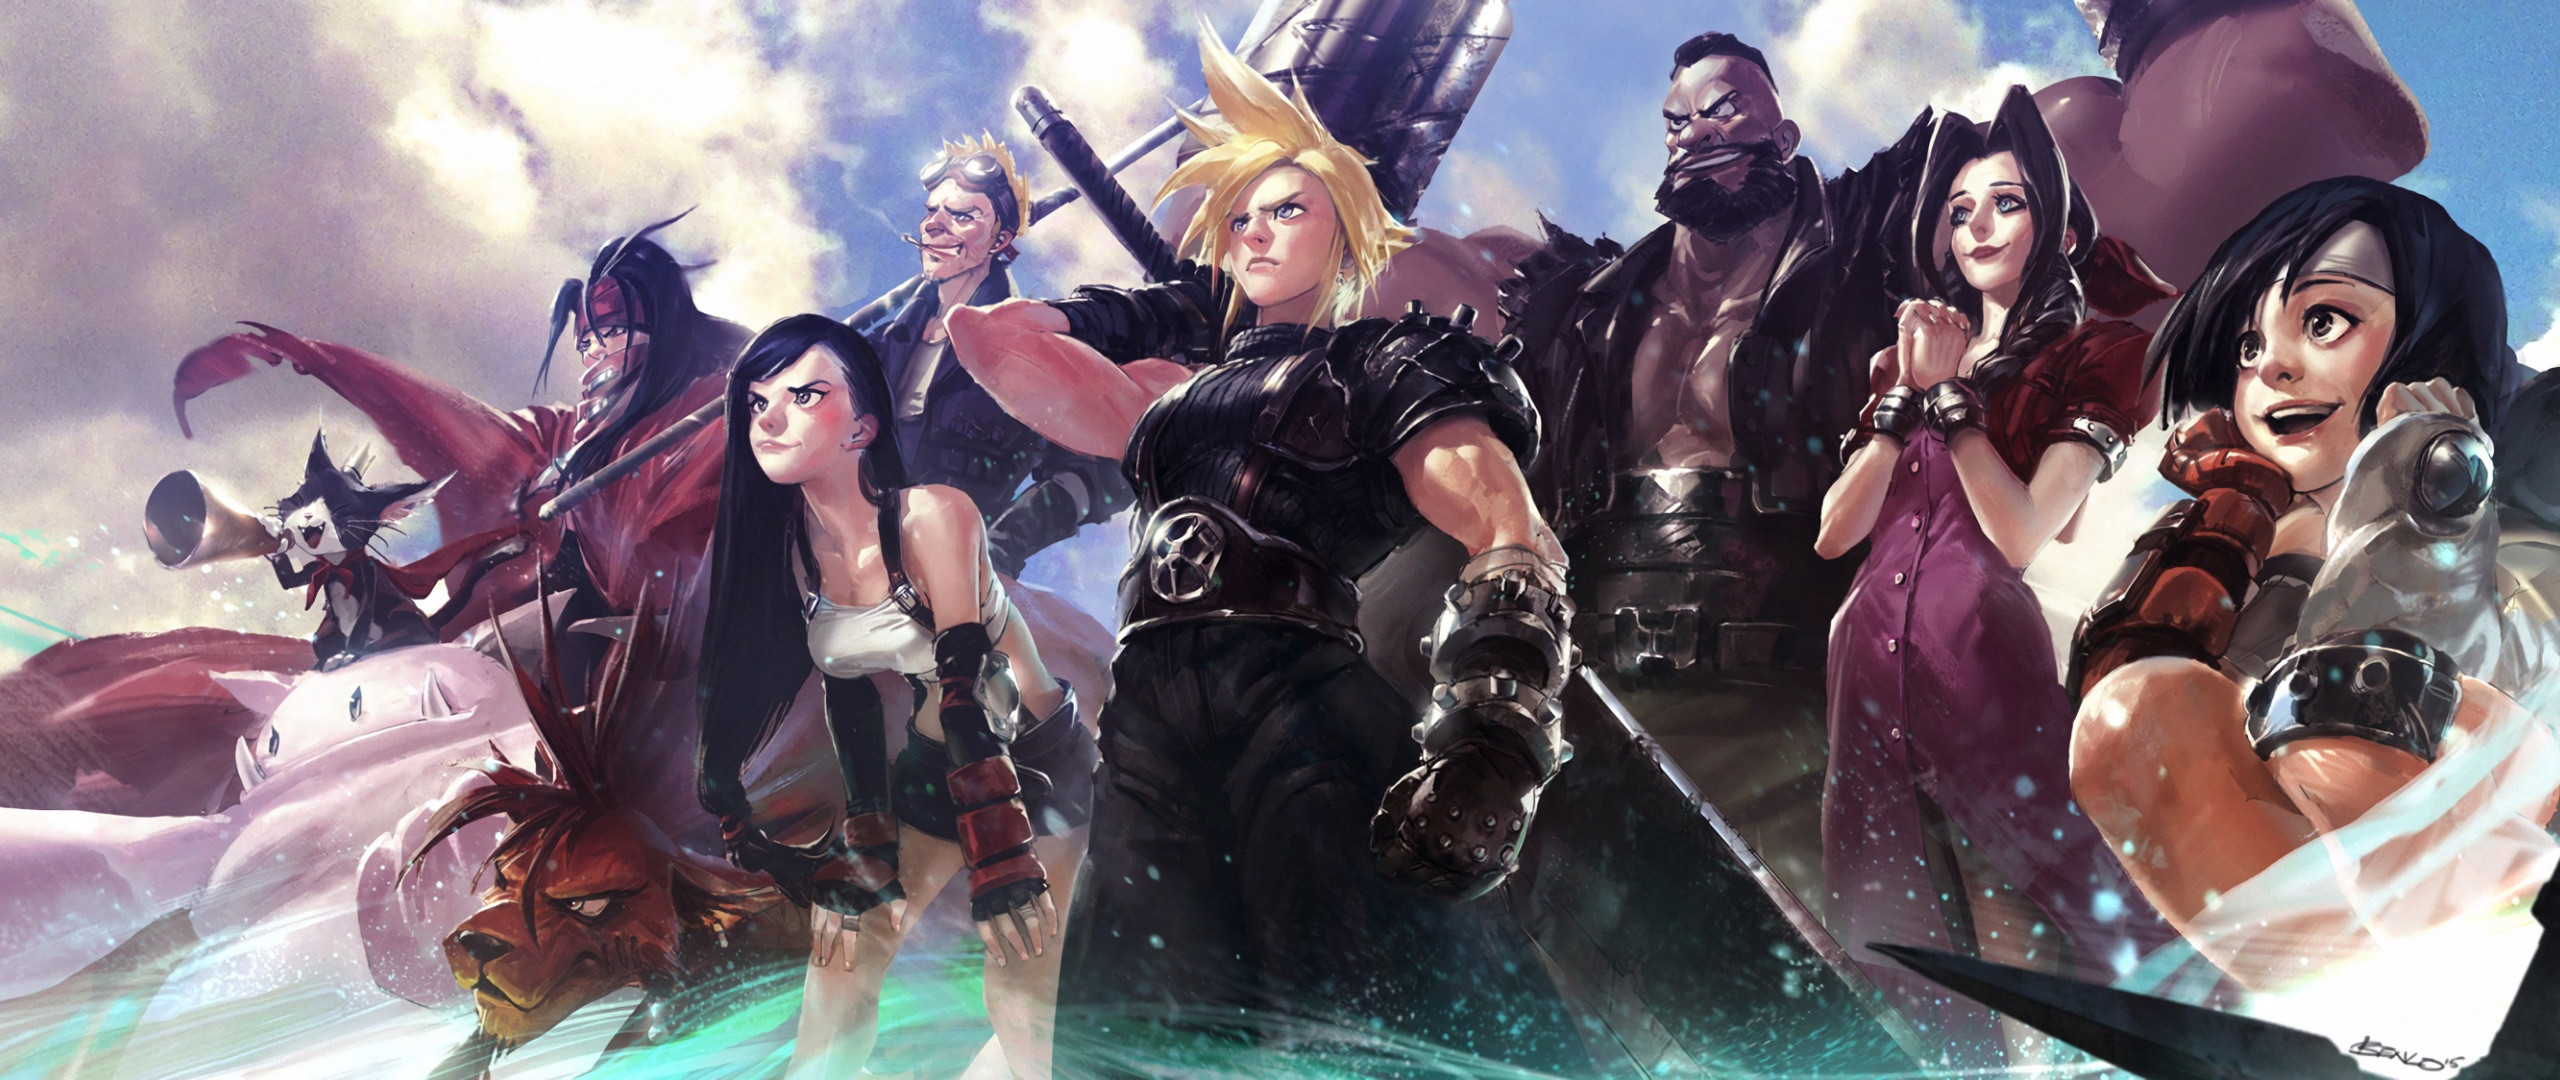 2560x1080  wallpaper Final Fantasy VII, video game, warriors